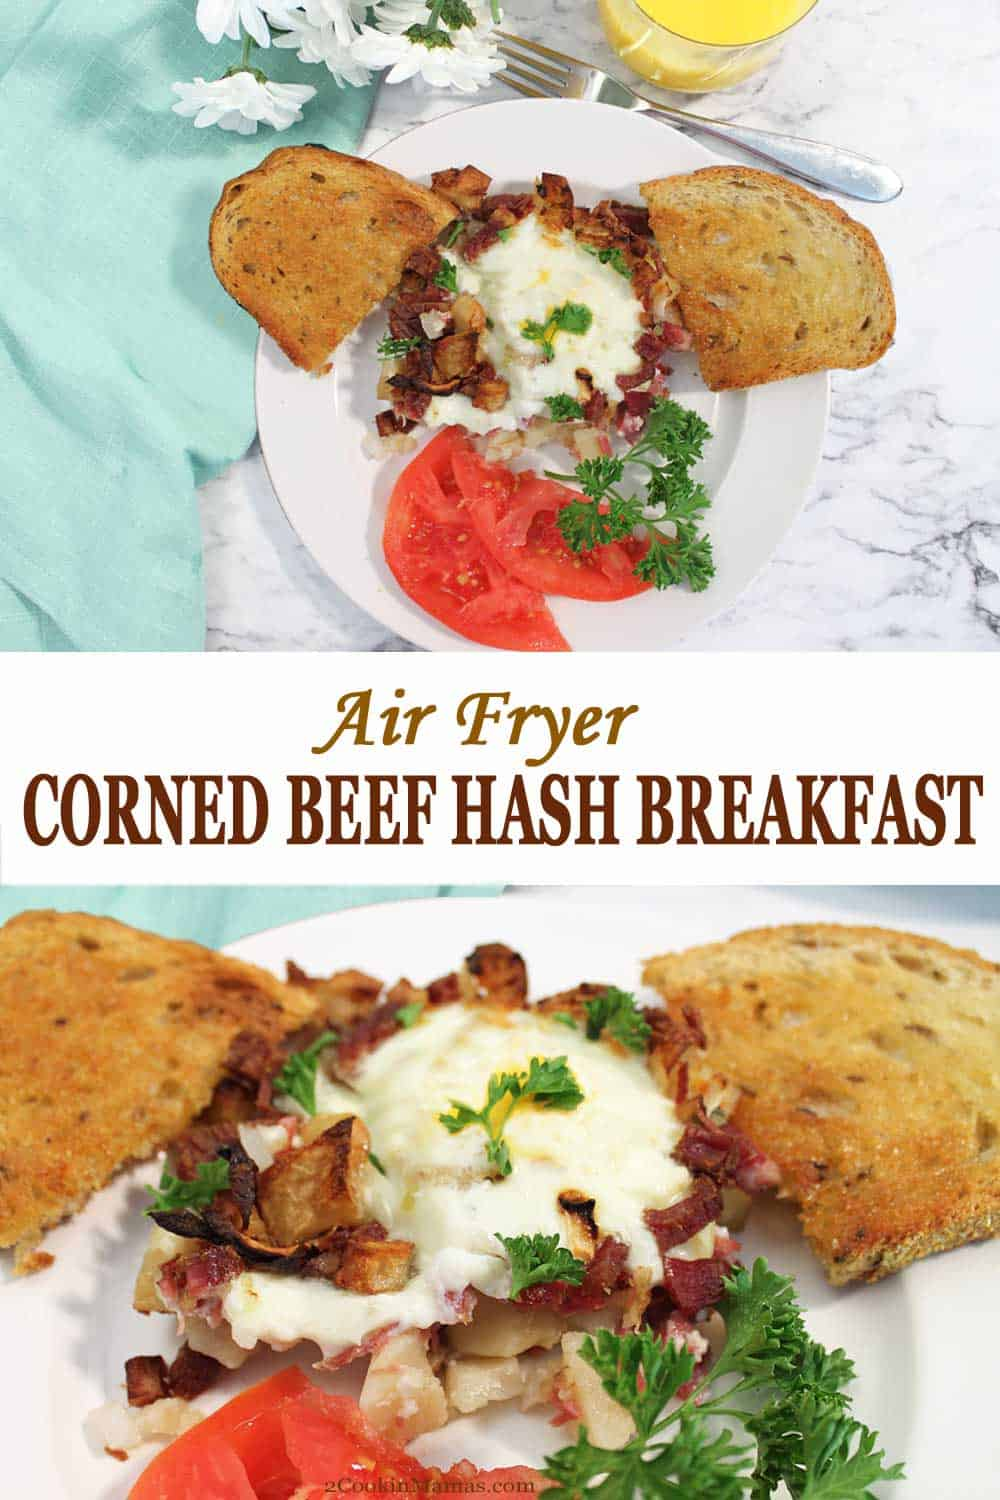 Air Fryer Corned Beef Hash Breakfast | 2 Cookin Mamas Leftover corned beef is never a problem when this easy Air Fryer Corned Beef Hash Breakfast is in your repertoire. Add some potatoes and chopped onion air fry for 10 minutes. Add eggs for 3 minutes and breakfast is served. Easy to make and super simple to clean up. You'll swear corned beef tastes better the second time around. #cornedbeef #leftovers #stpatricksday #breakfast #eggs #easy #potatoes #airfryer